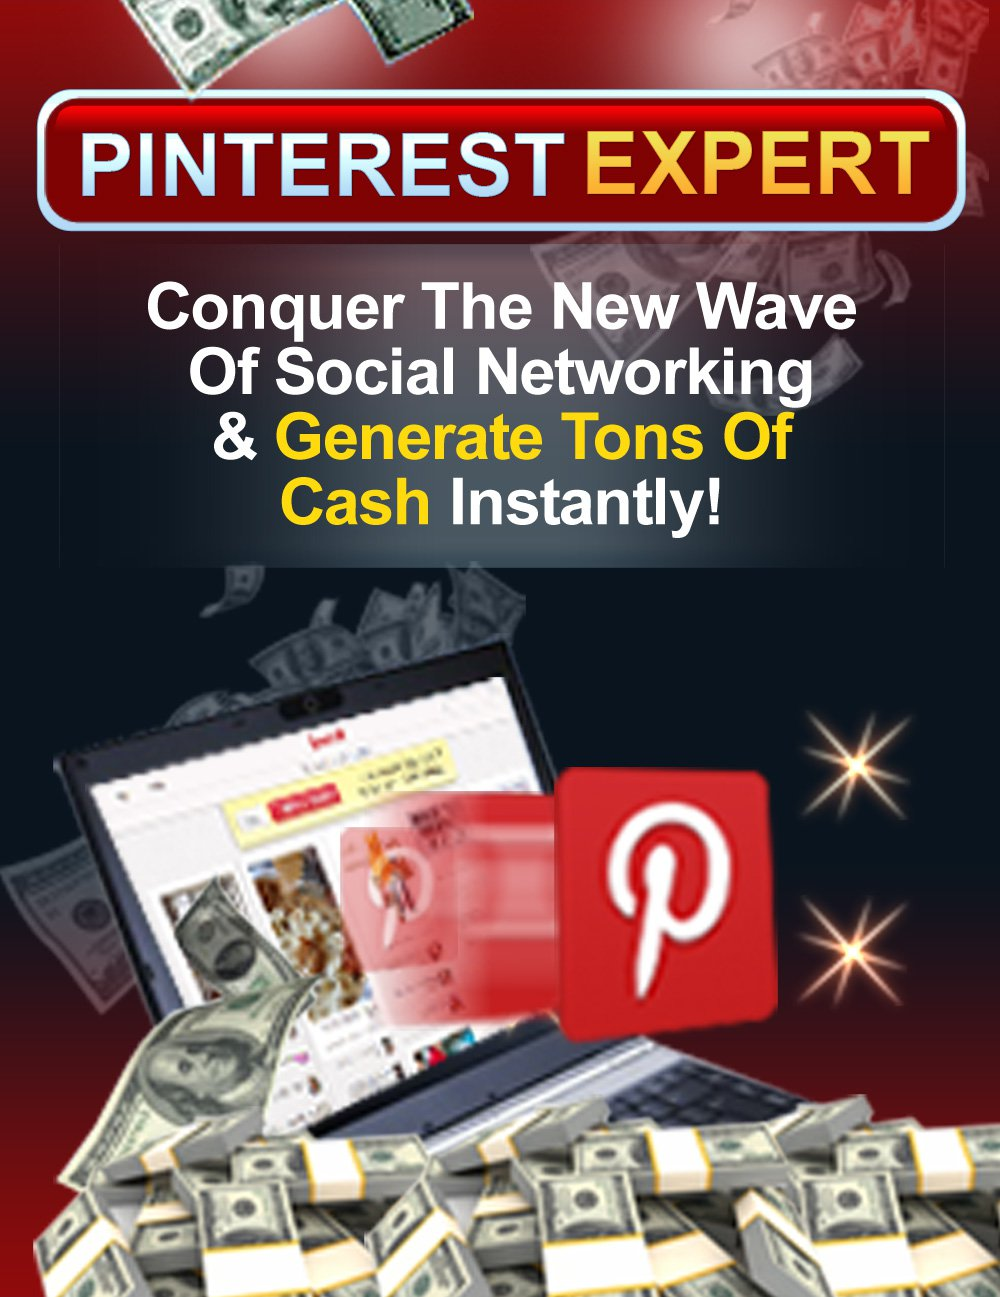 Pinterest Expert - Cash Generating Course MP4 Videos & Ebook